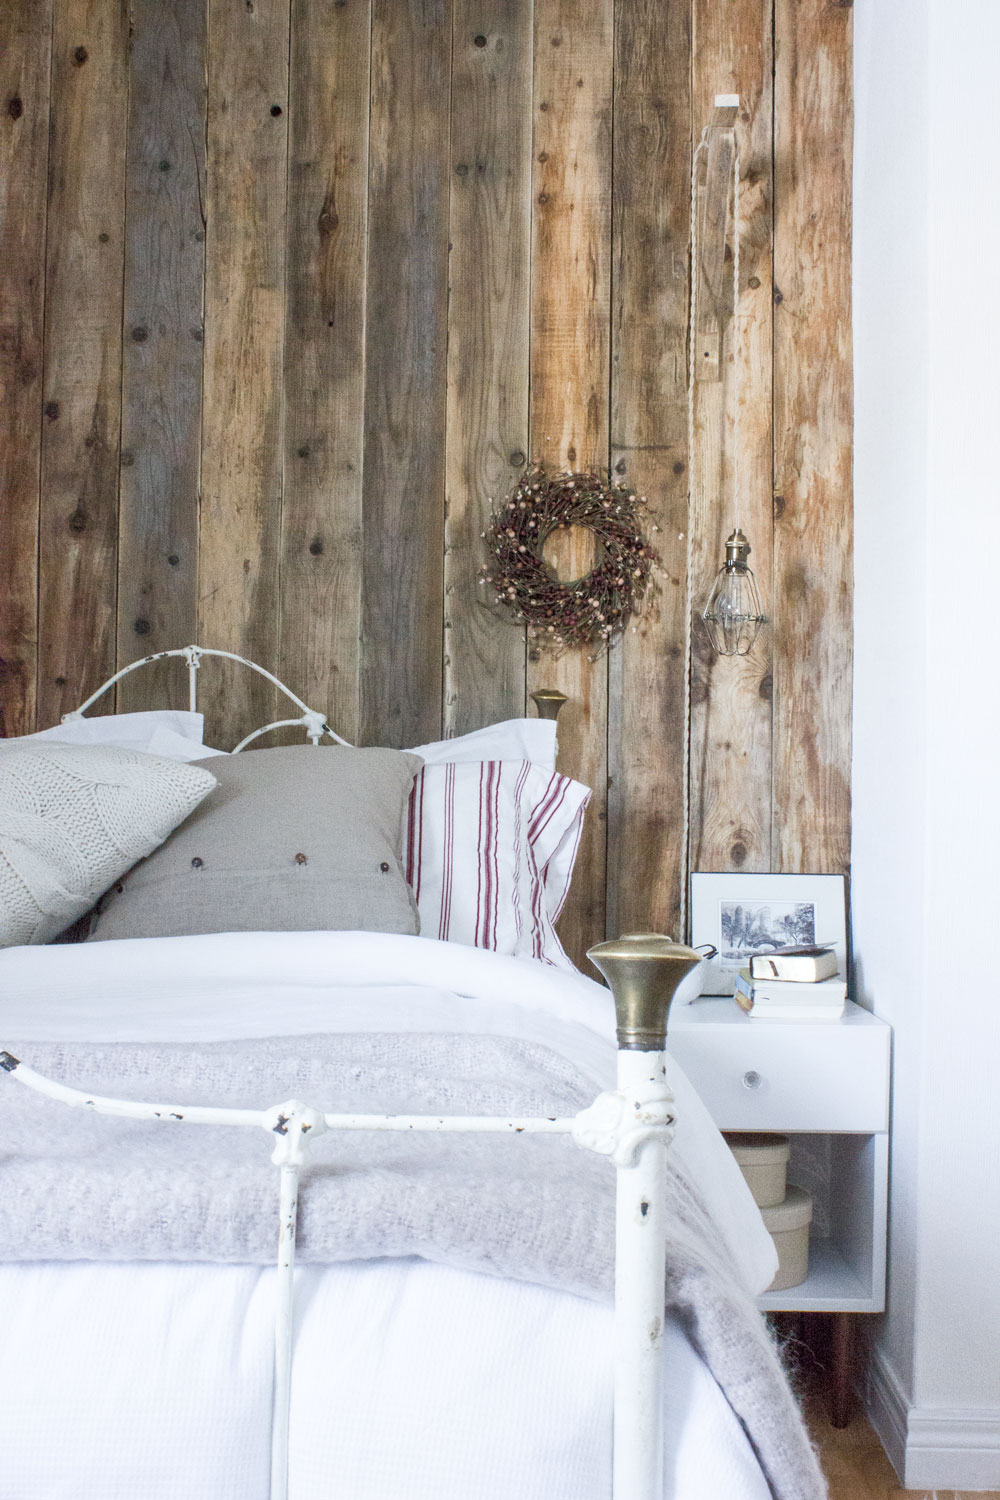 Recent Refreshed Designs Guest Room Project   Click For Details